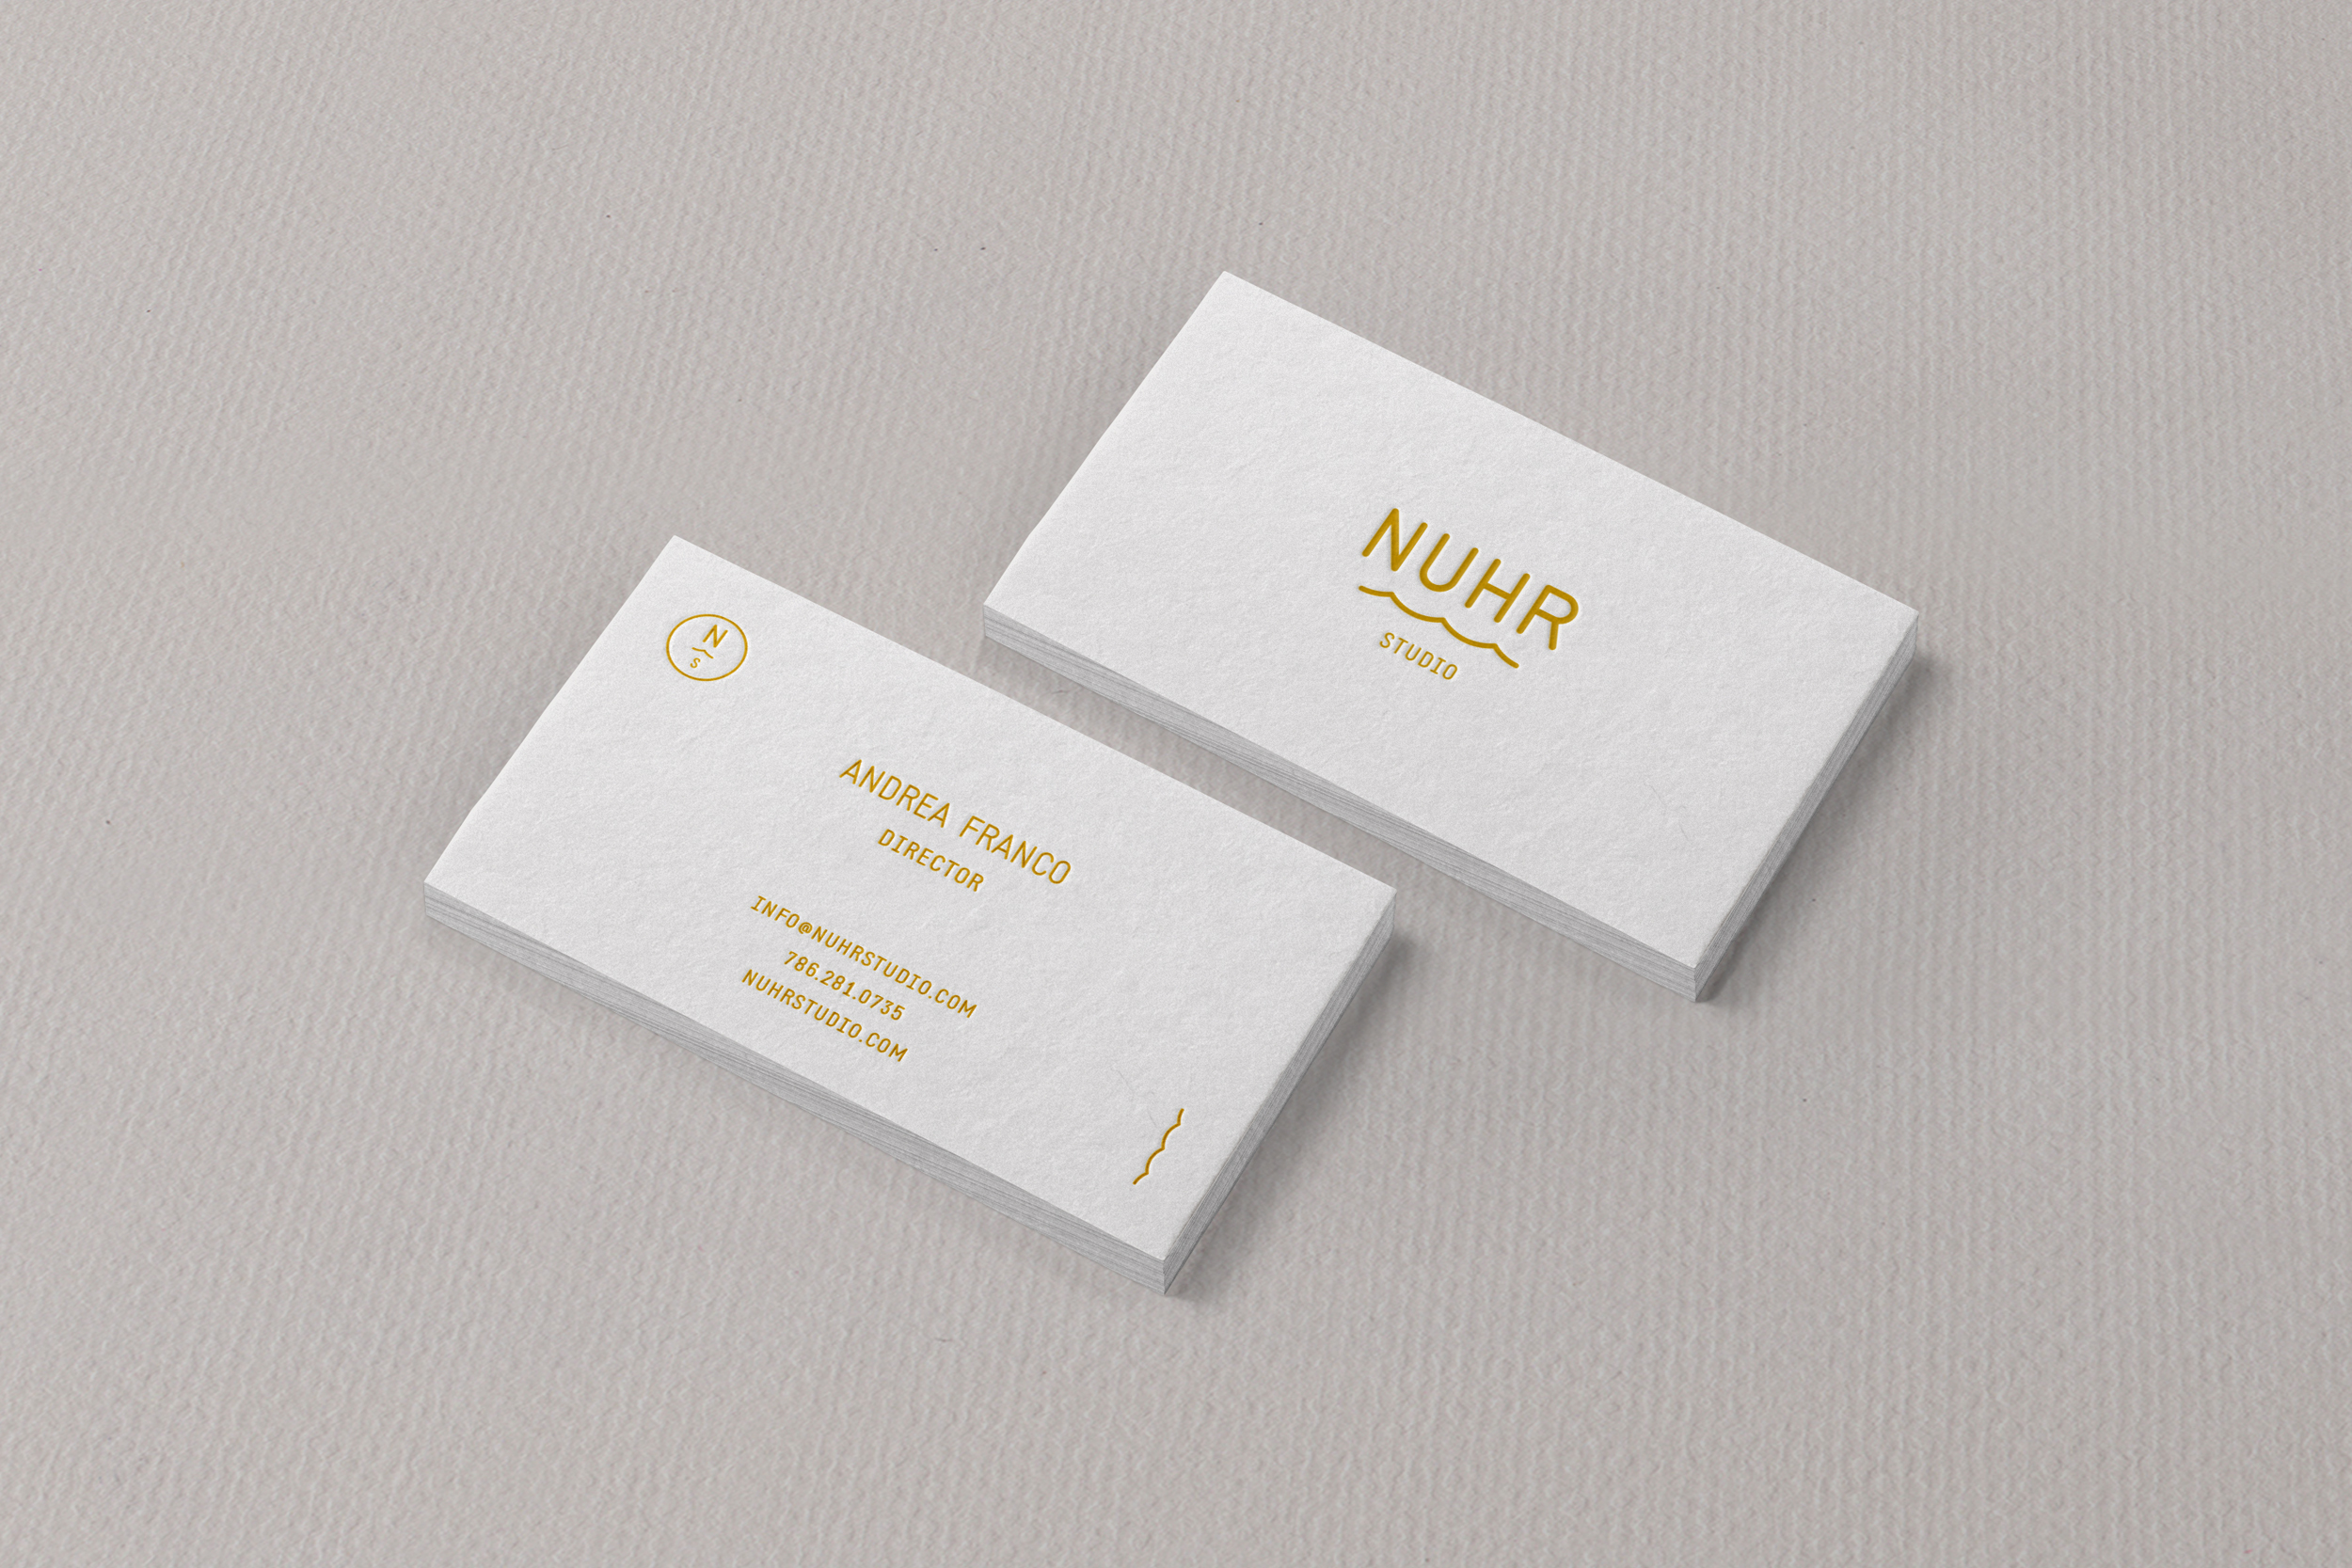 NUHR-Studio-Business-Card.jpg